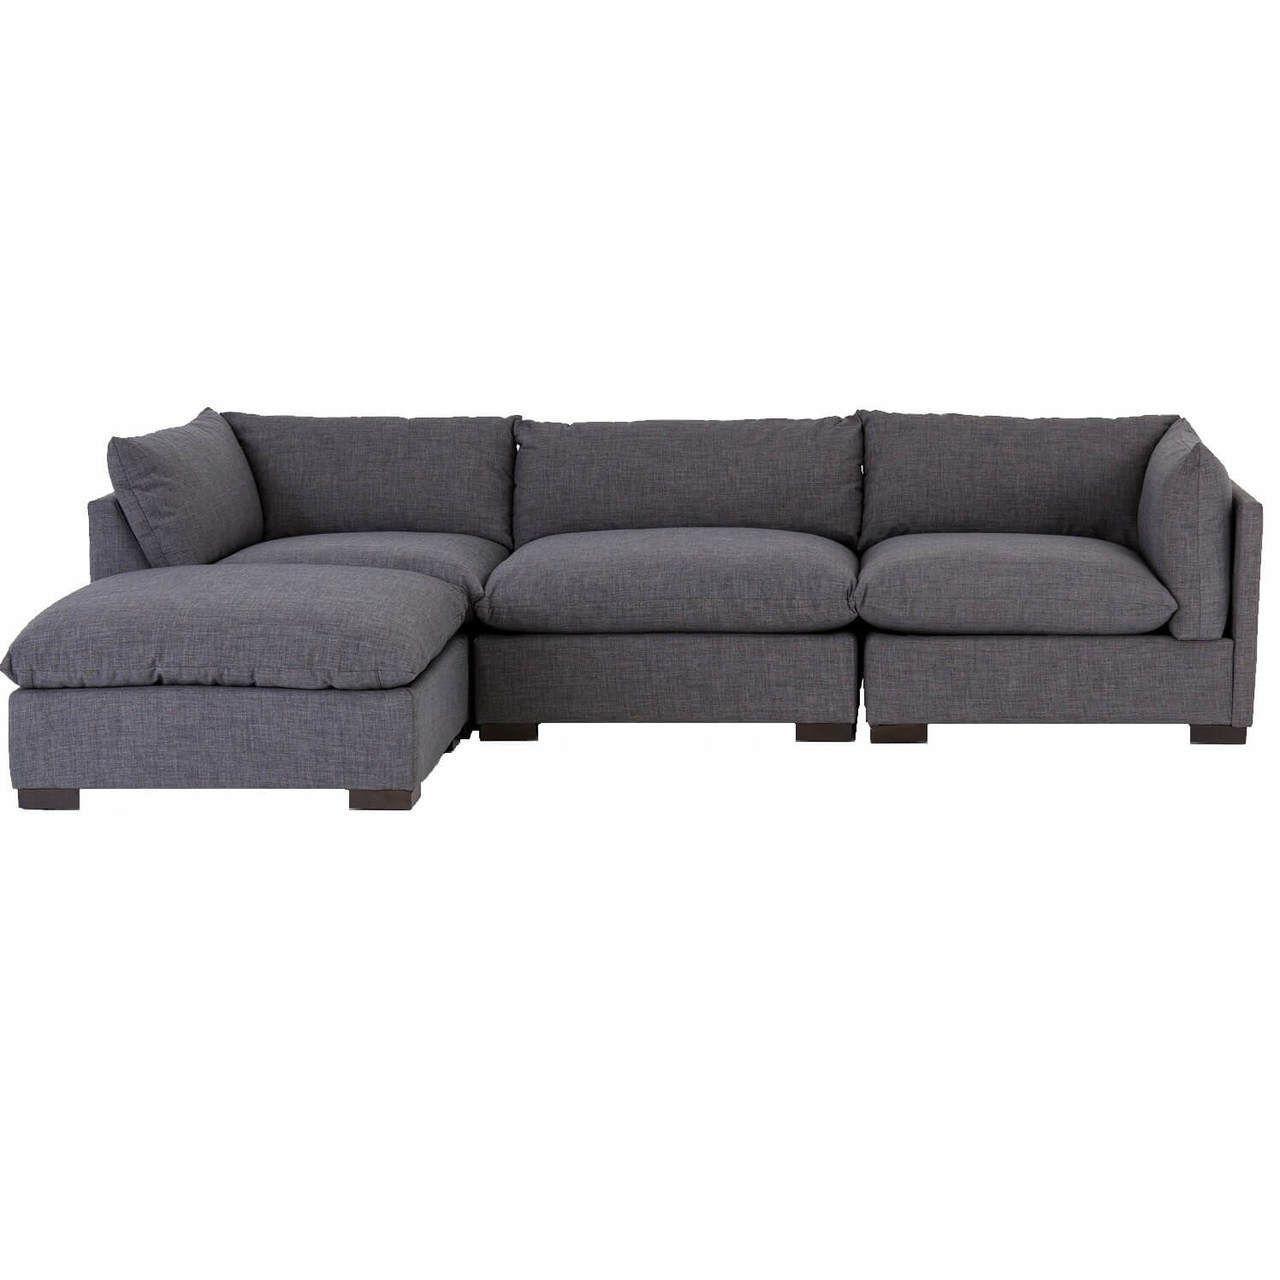 Best Westworld Modern Gray 4 Piece Modular Lounge Sectional 640 x 480